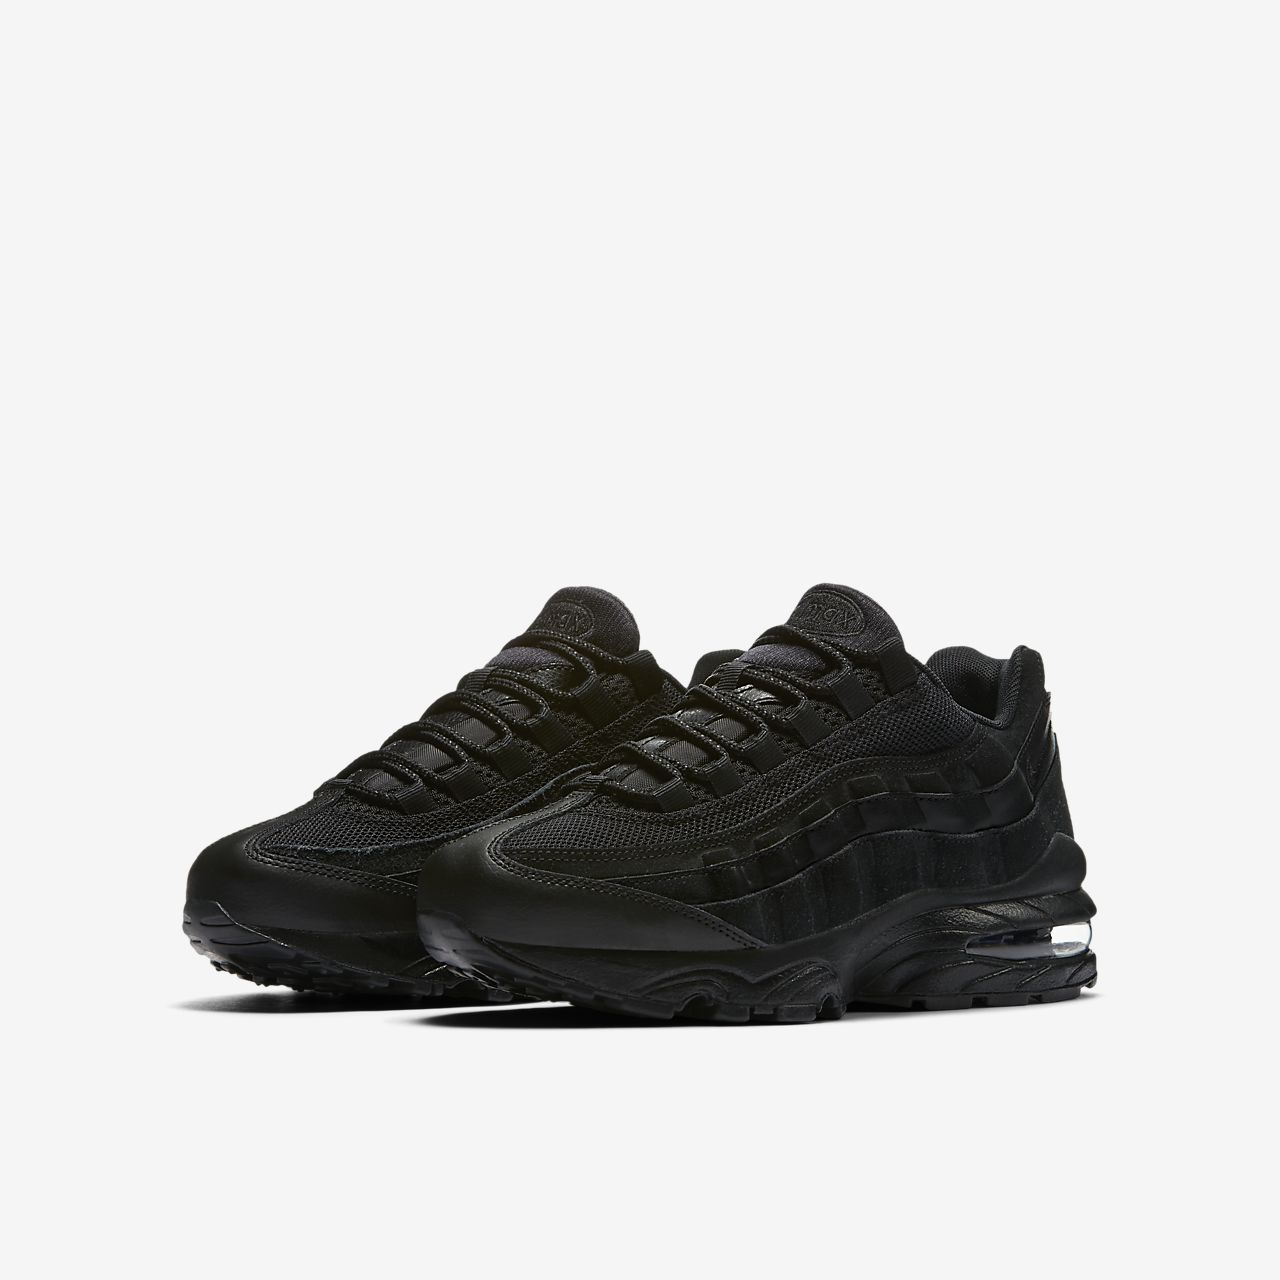 Nike Air Max 95 Sneakers In All Black size 10.5 ASOS | Nike